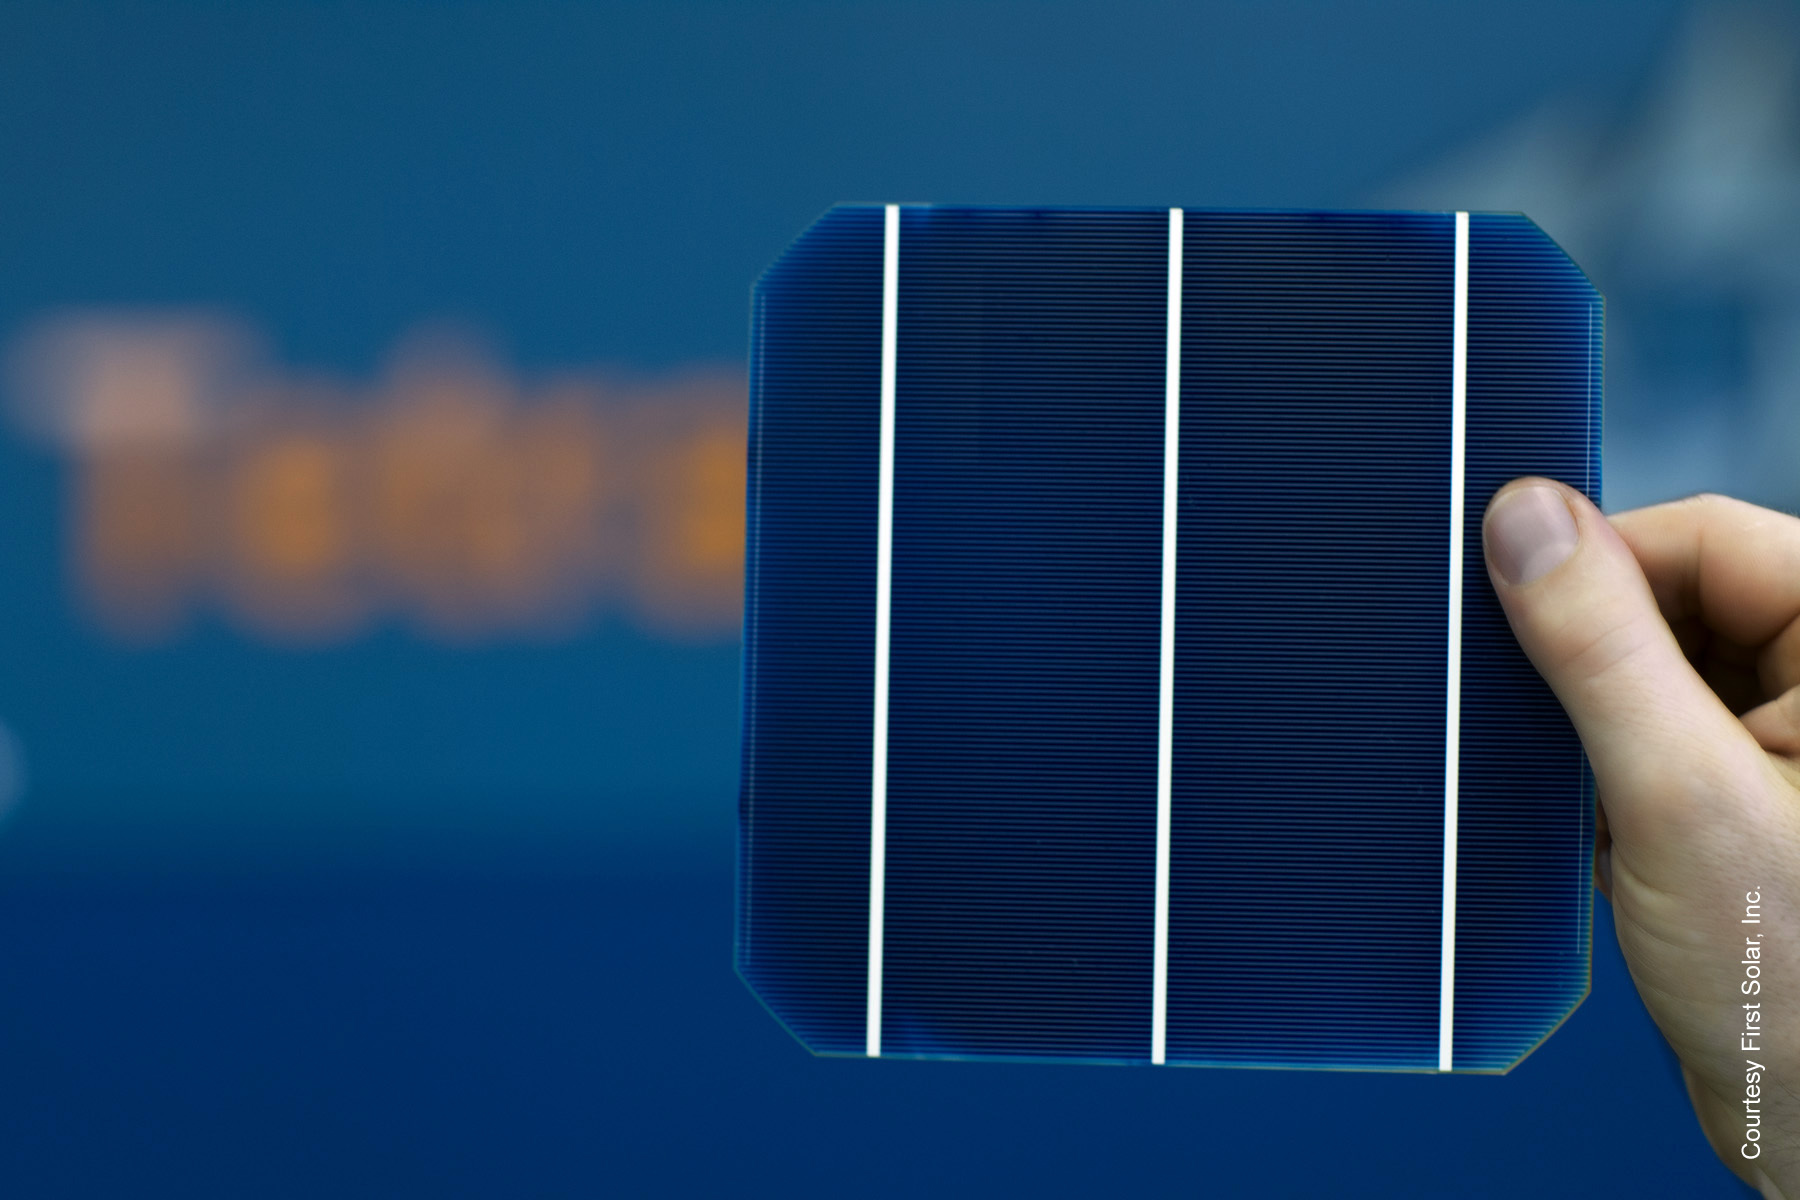 First Solar today announced it is acquiring TetraSun, which has developed a break-through cell architecture capable of conversion efficiencies exceeding 21 percent with commercial-scale manufacturing costs comparable to conventional multicrystalline silicon solar cells. (Photo: Business Wire)